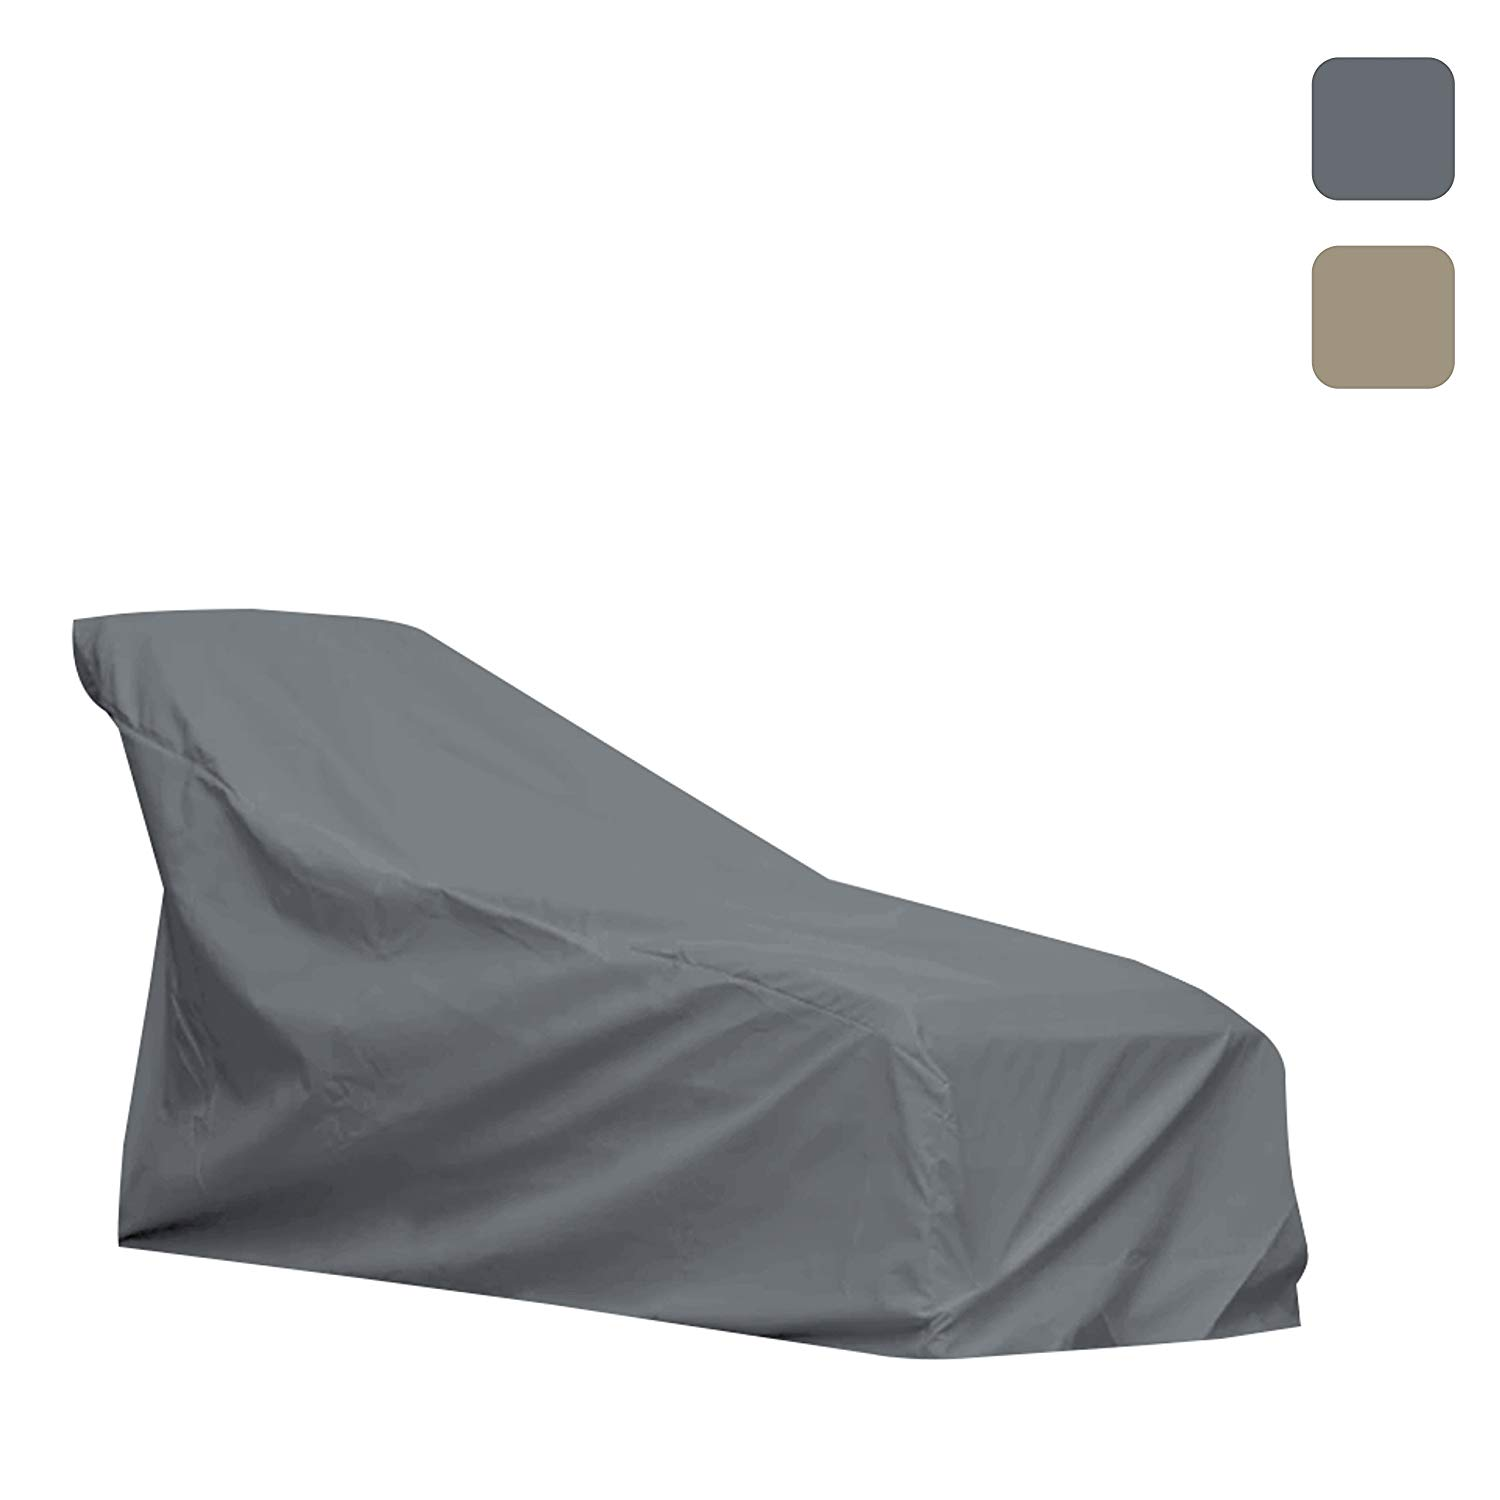 Patio Chaise Lounge Cover- Waterproof, Air vents, 100% UV-Resistant, 1000 D Both Side PVC Coated, Outdoor Furniture Chaise Covers with Drawstring for Snug fit to Withstand Winds & Storms, Grey